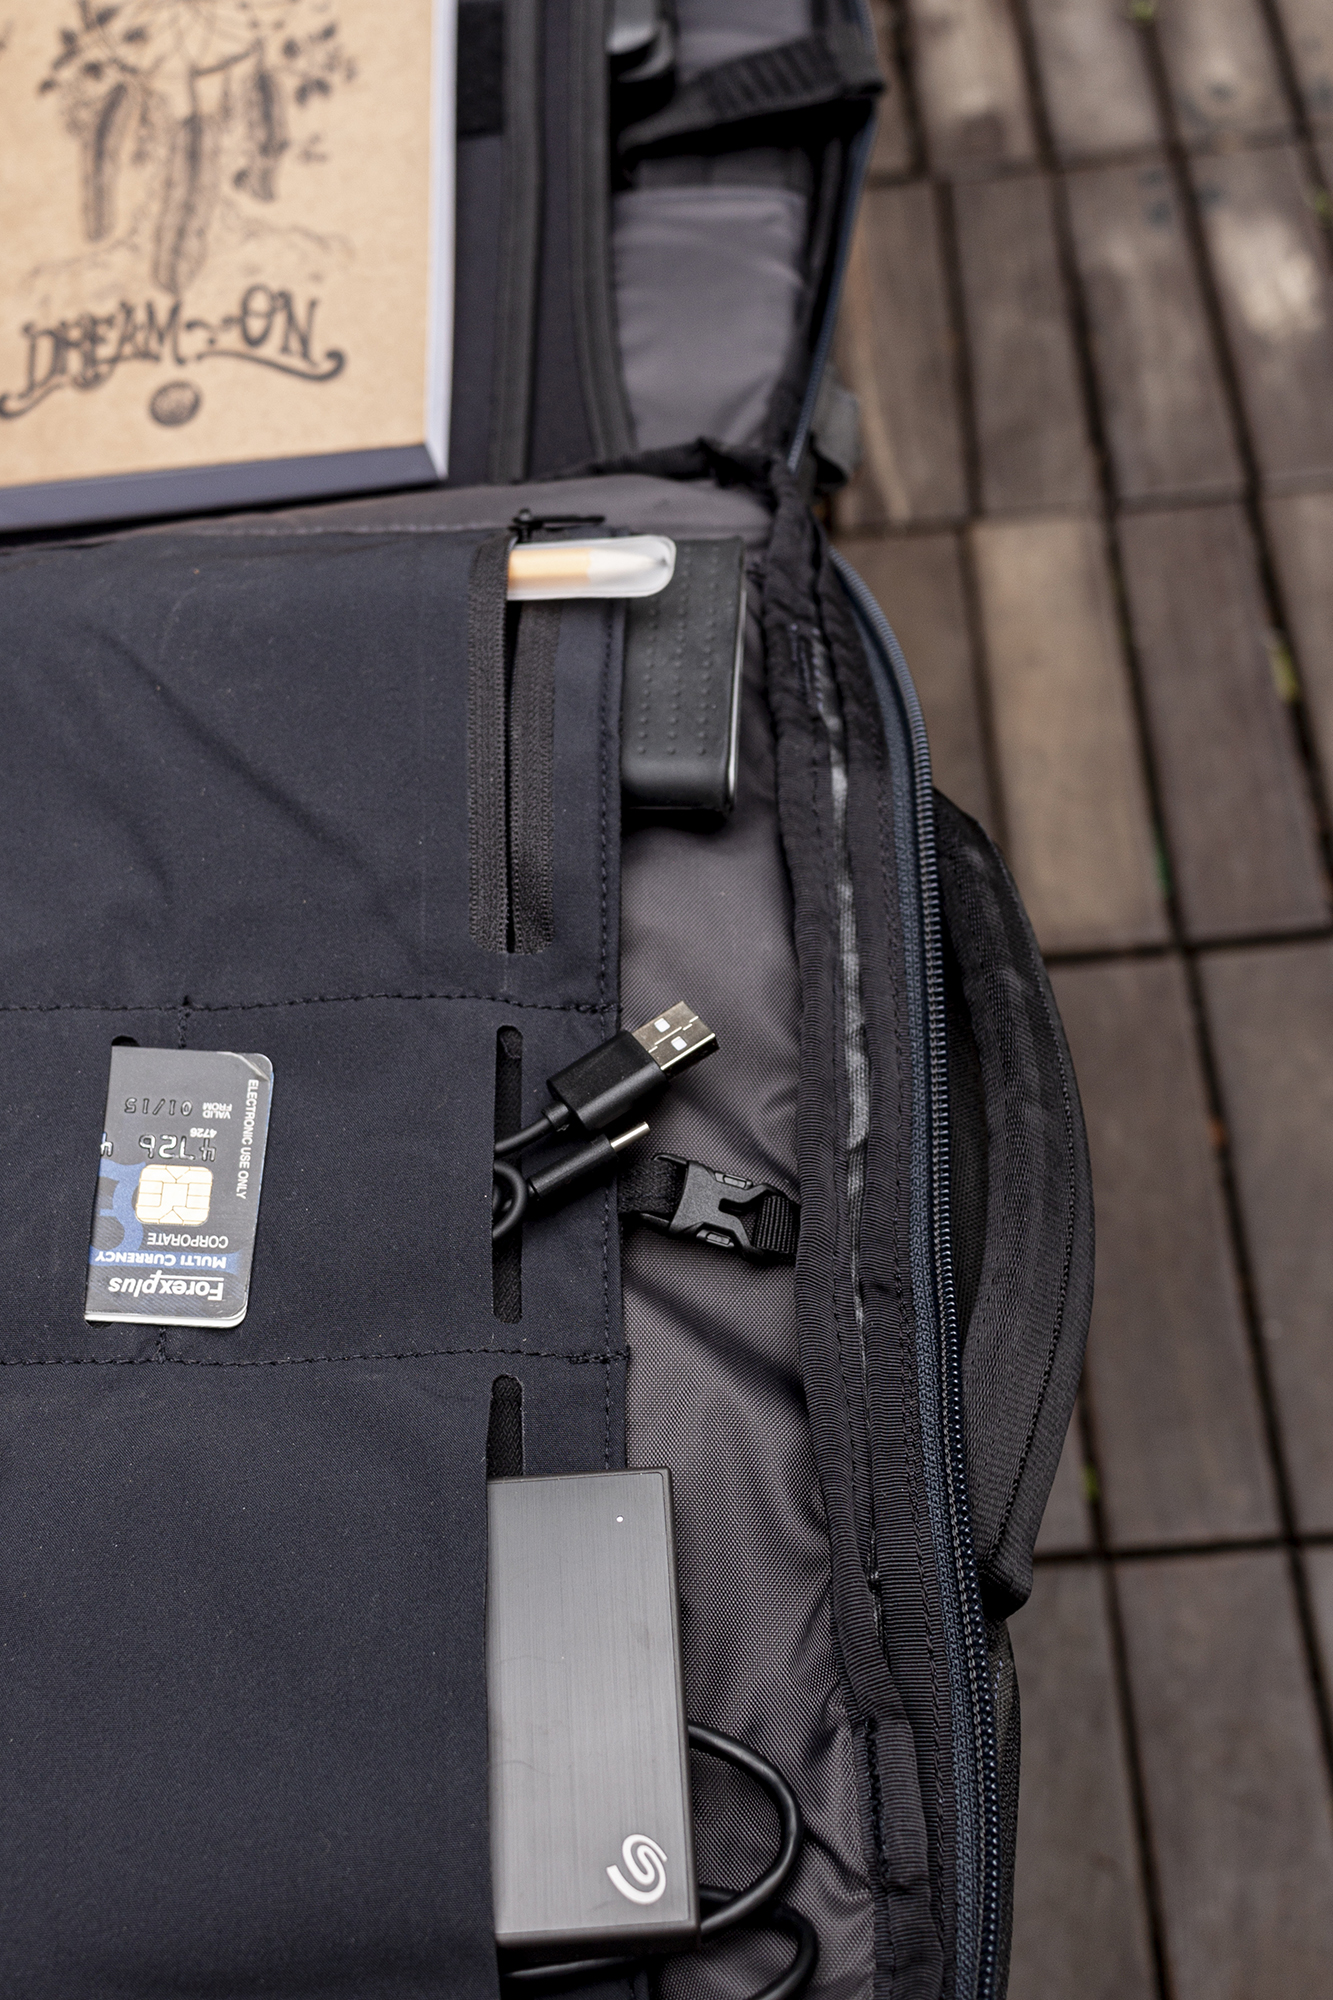 The Daily has plenty of pockets and sections to store gadgets of various sizes